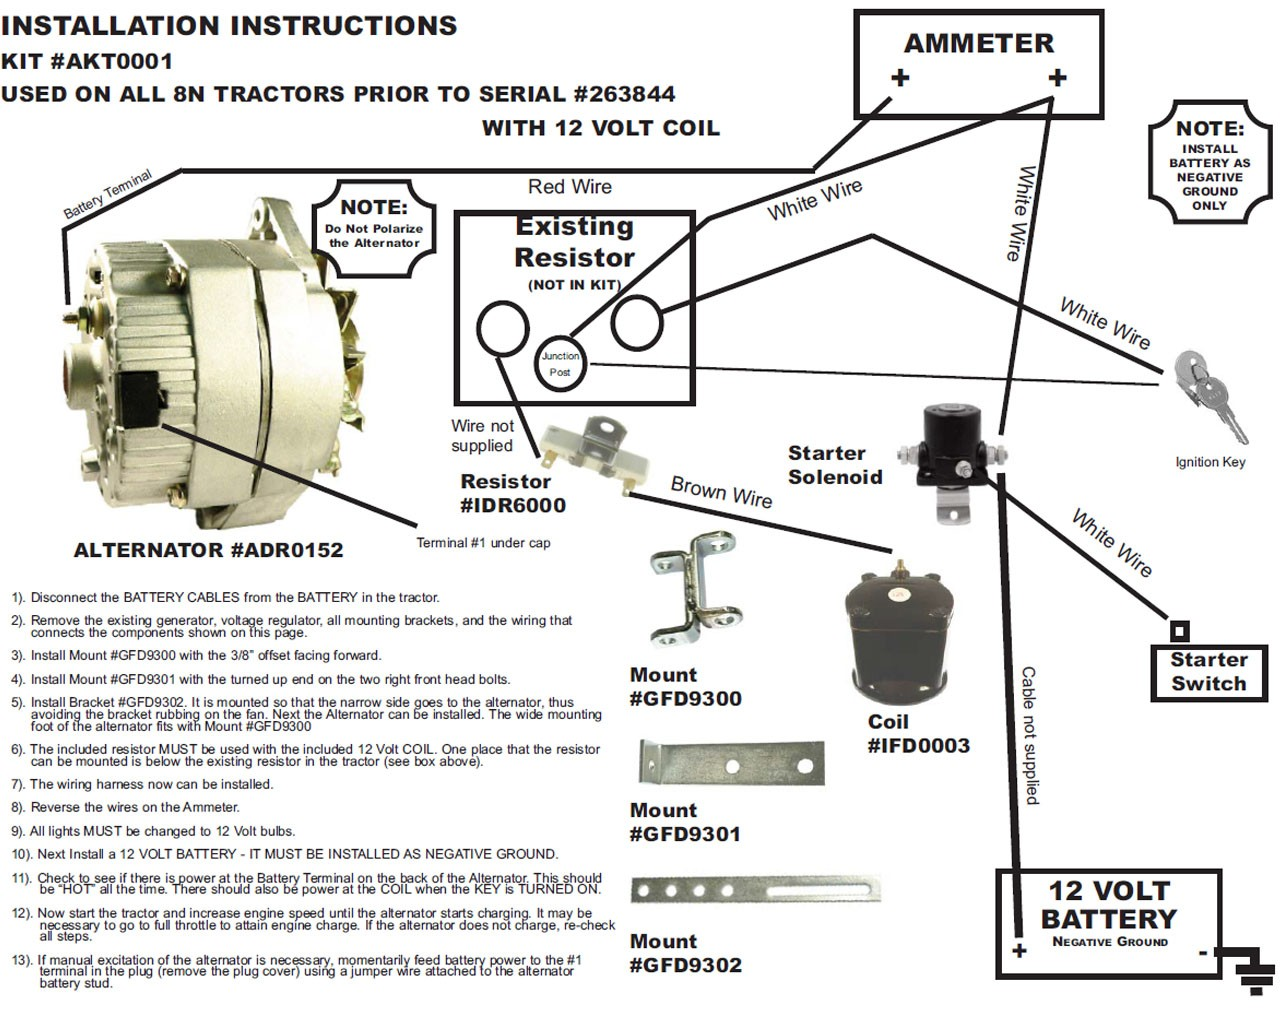 Gm Marine Alternator Wiring Wiring Diagrams All Touch Entry Touch Entry Babelweb It